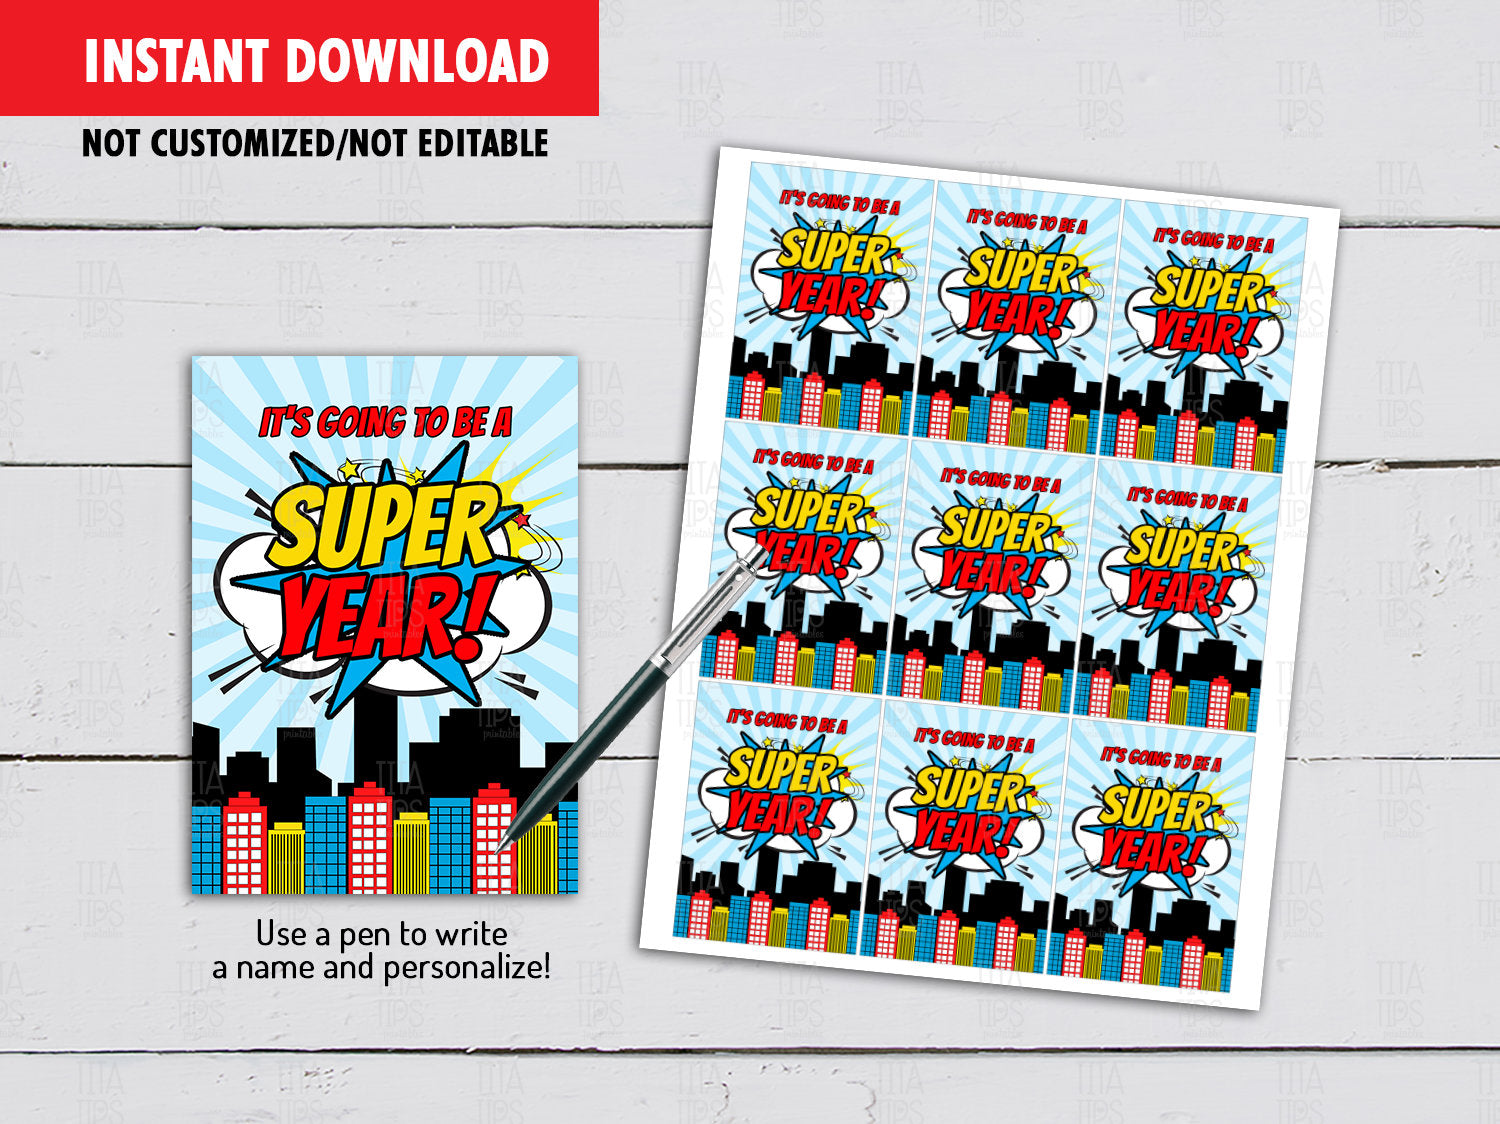 It's going to be a Super Year Tag, Back to School Gifts Ideas, Instant Download - TitaTipsPrintables